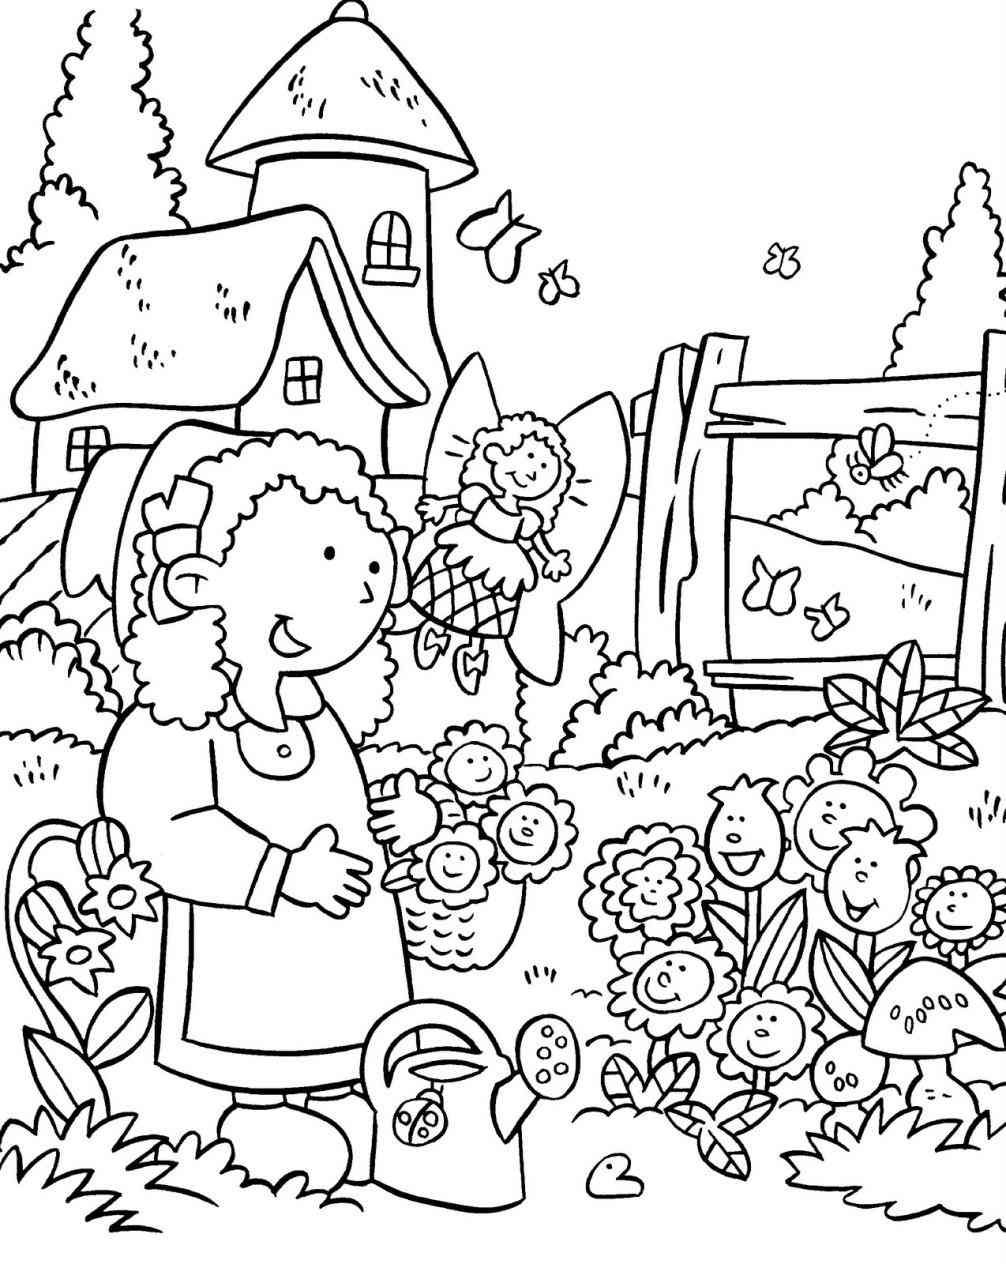 turn pictures into coloring pages for free - coloring pages app